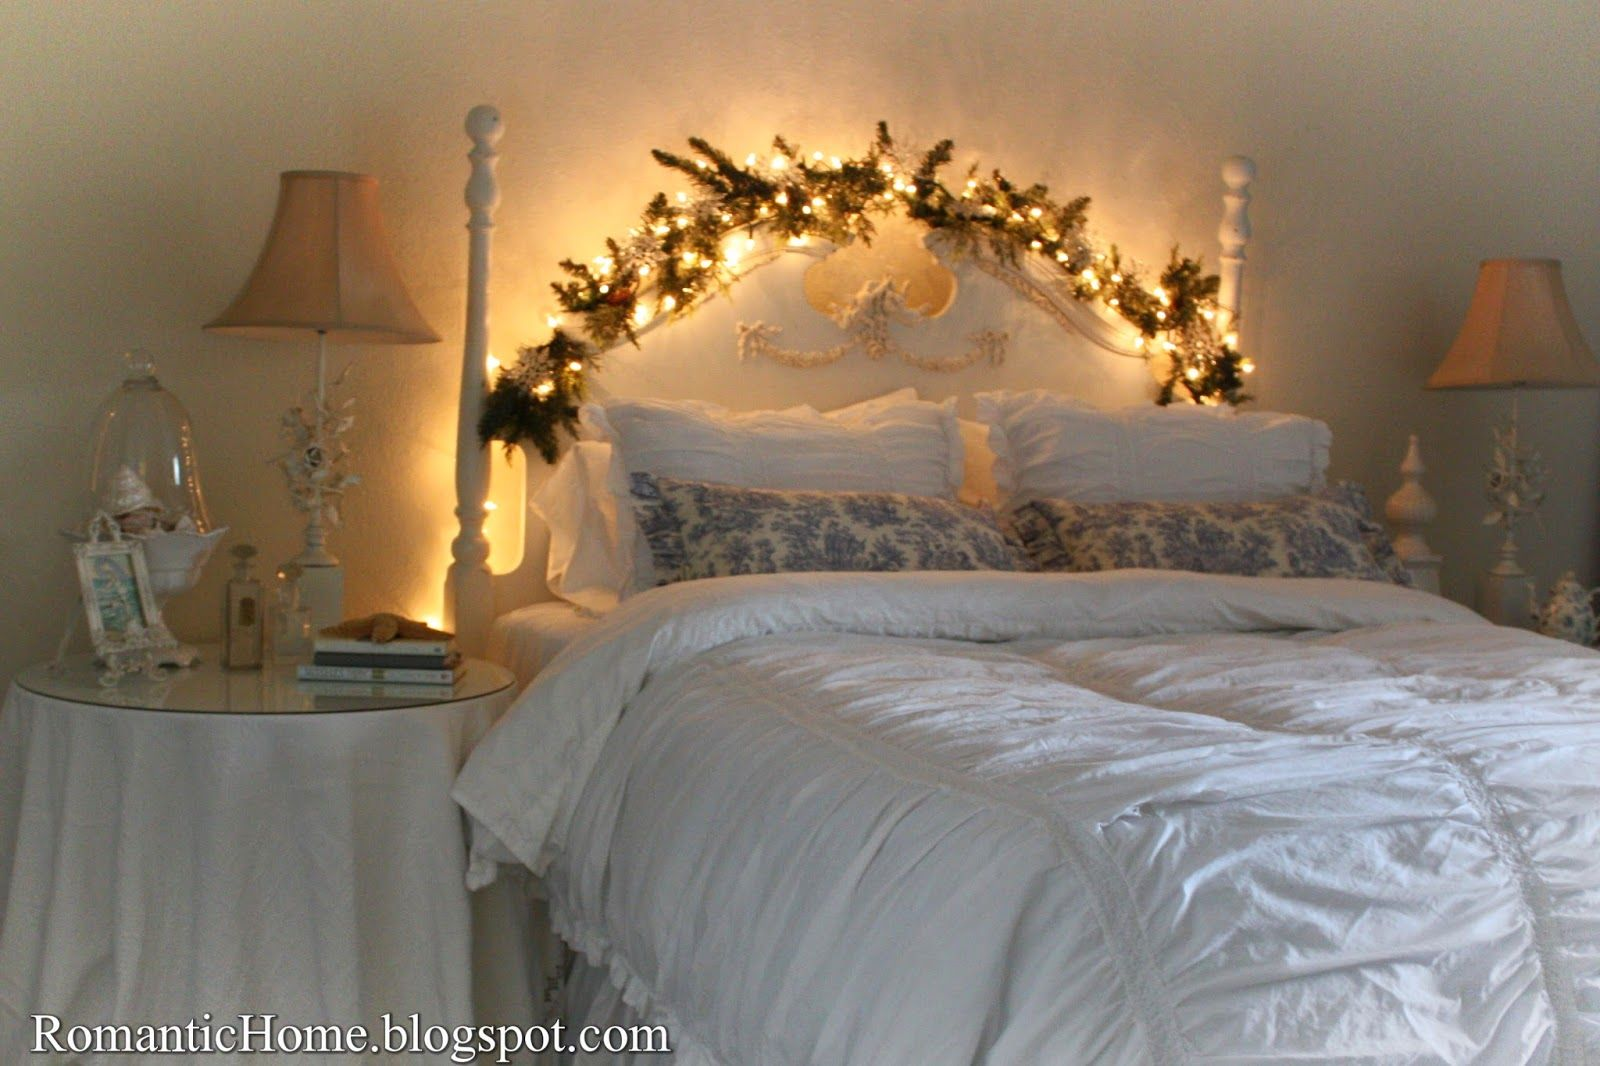 My Romantic Home: Merry Christmas - Show and Tell Friday